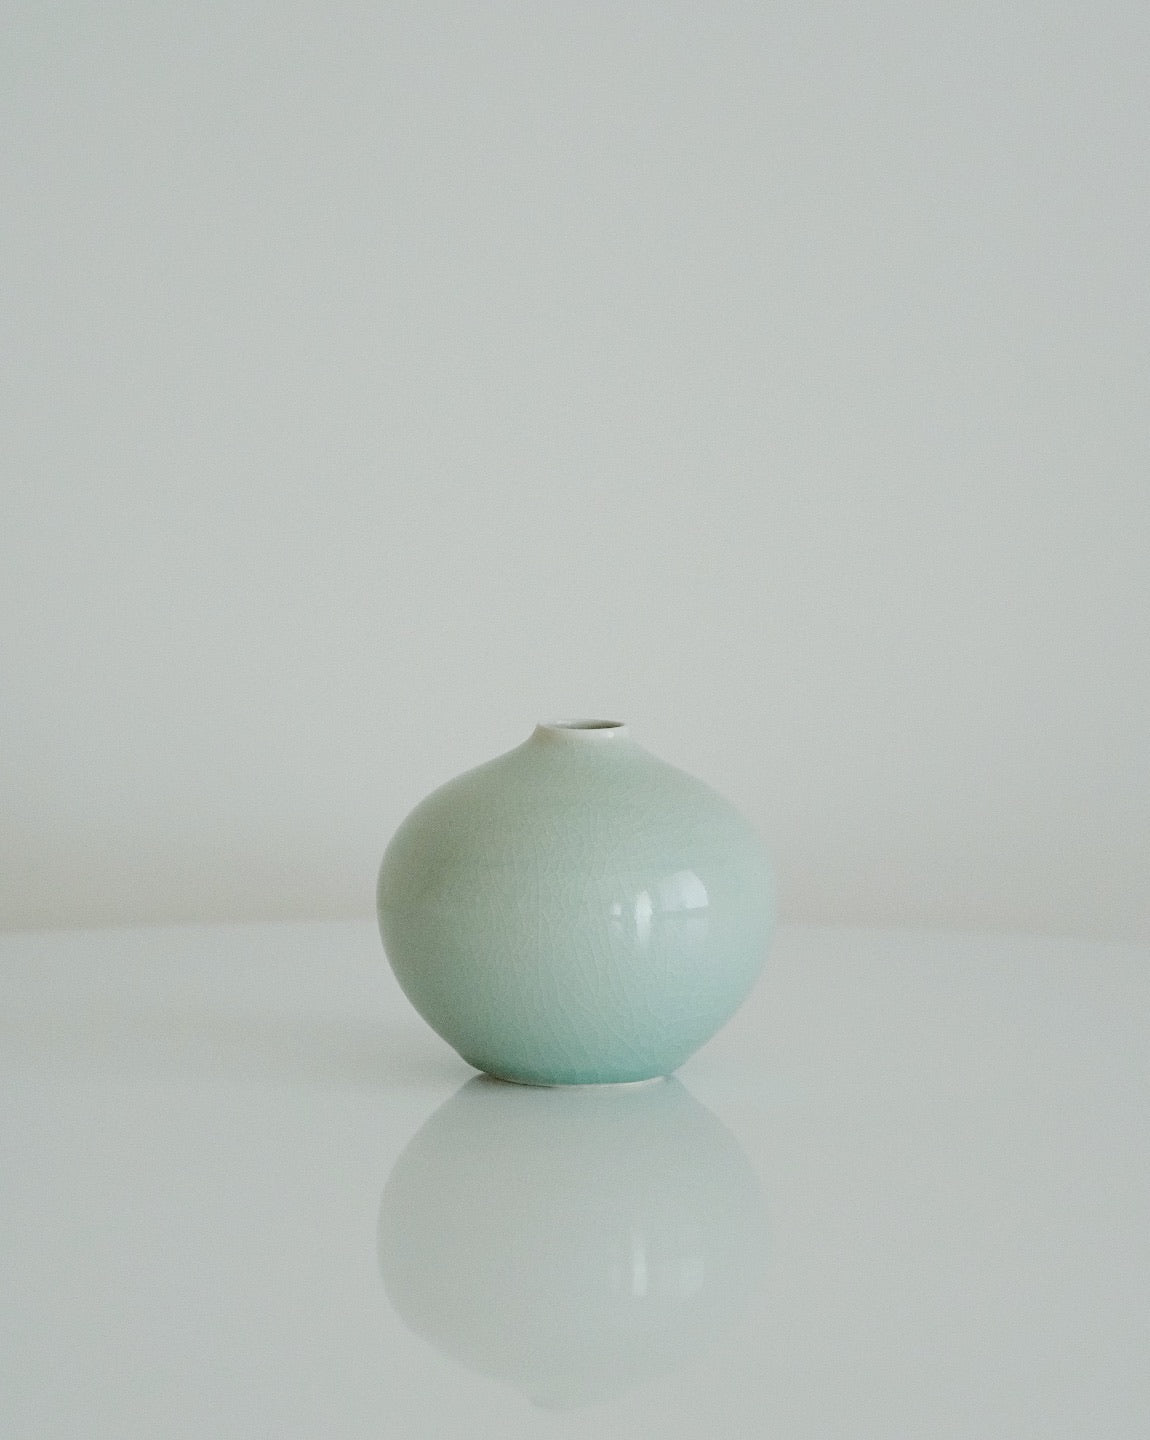 Light-Chungja(軟靑瓷) Vase (Small)